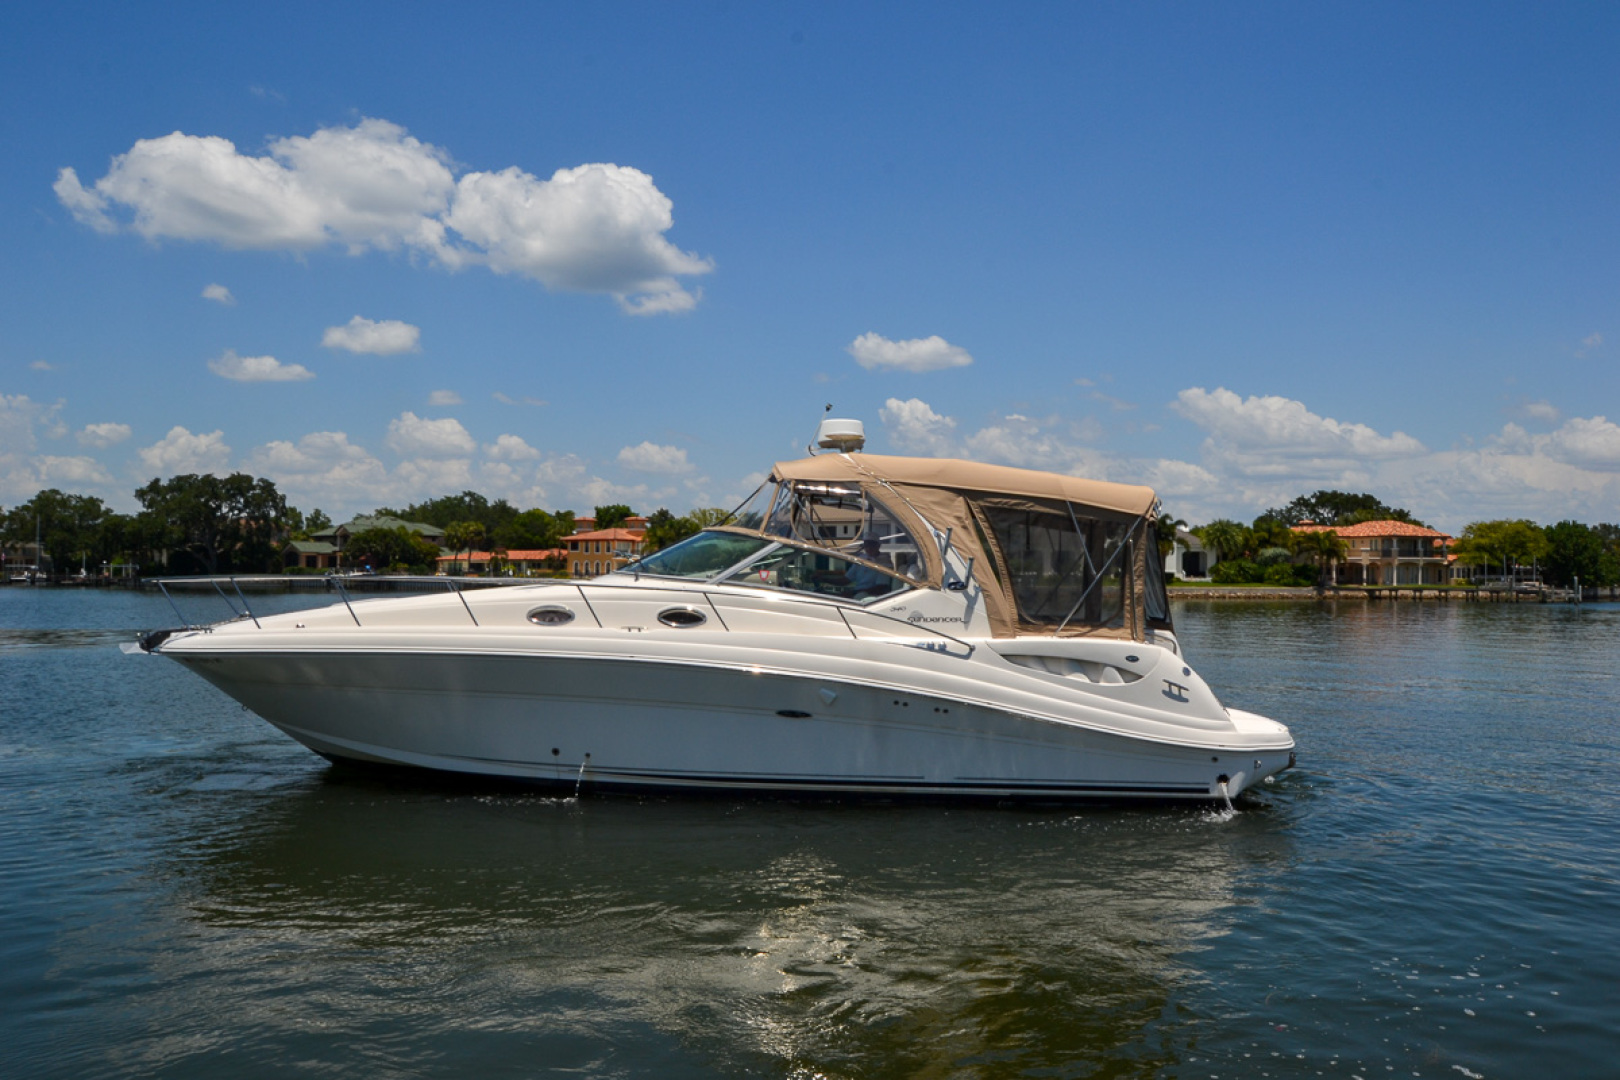 Sea Ray 340 Sportsman